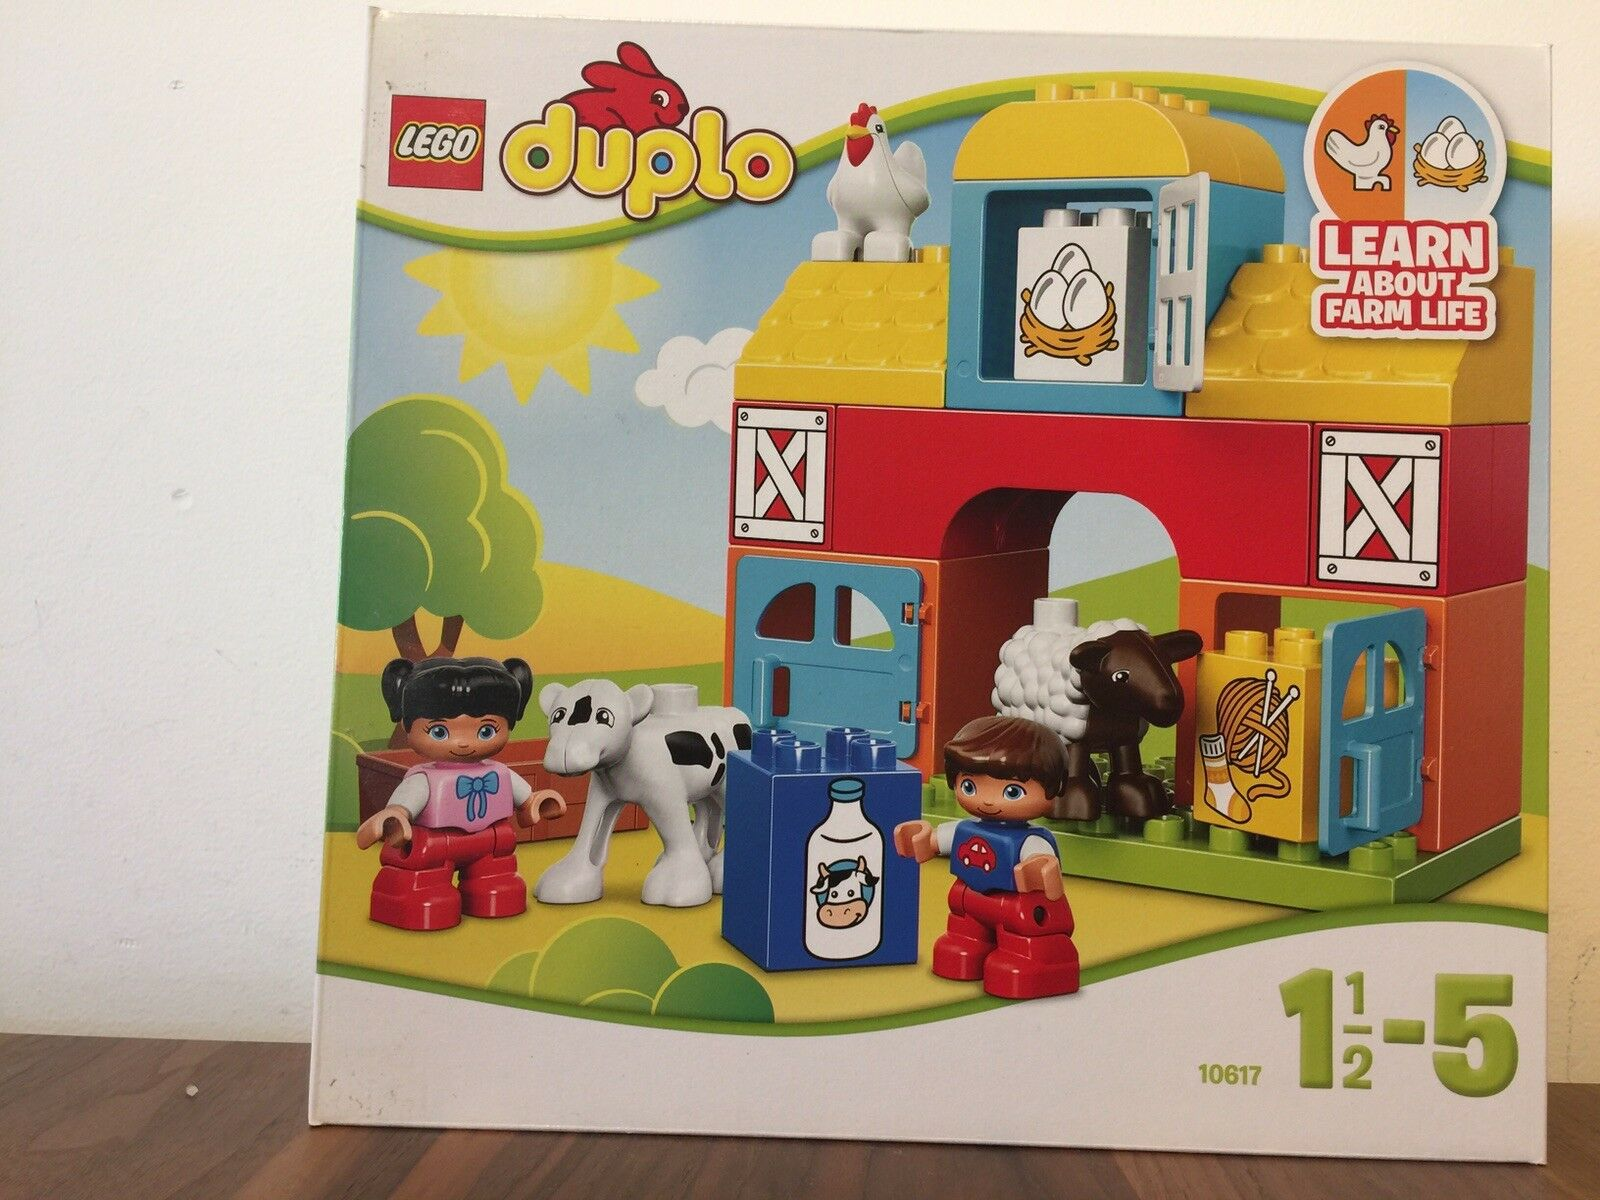 Lego Duplo My First Farm 10617 (Brand New Unopened) Recommended Age 1.5-5y